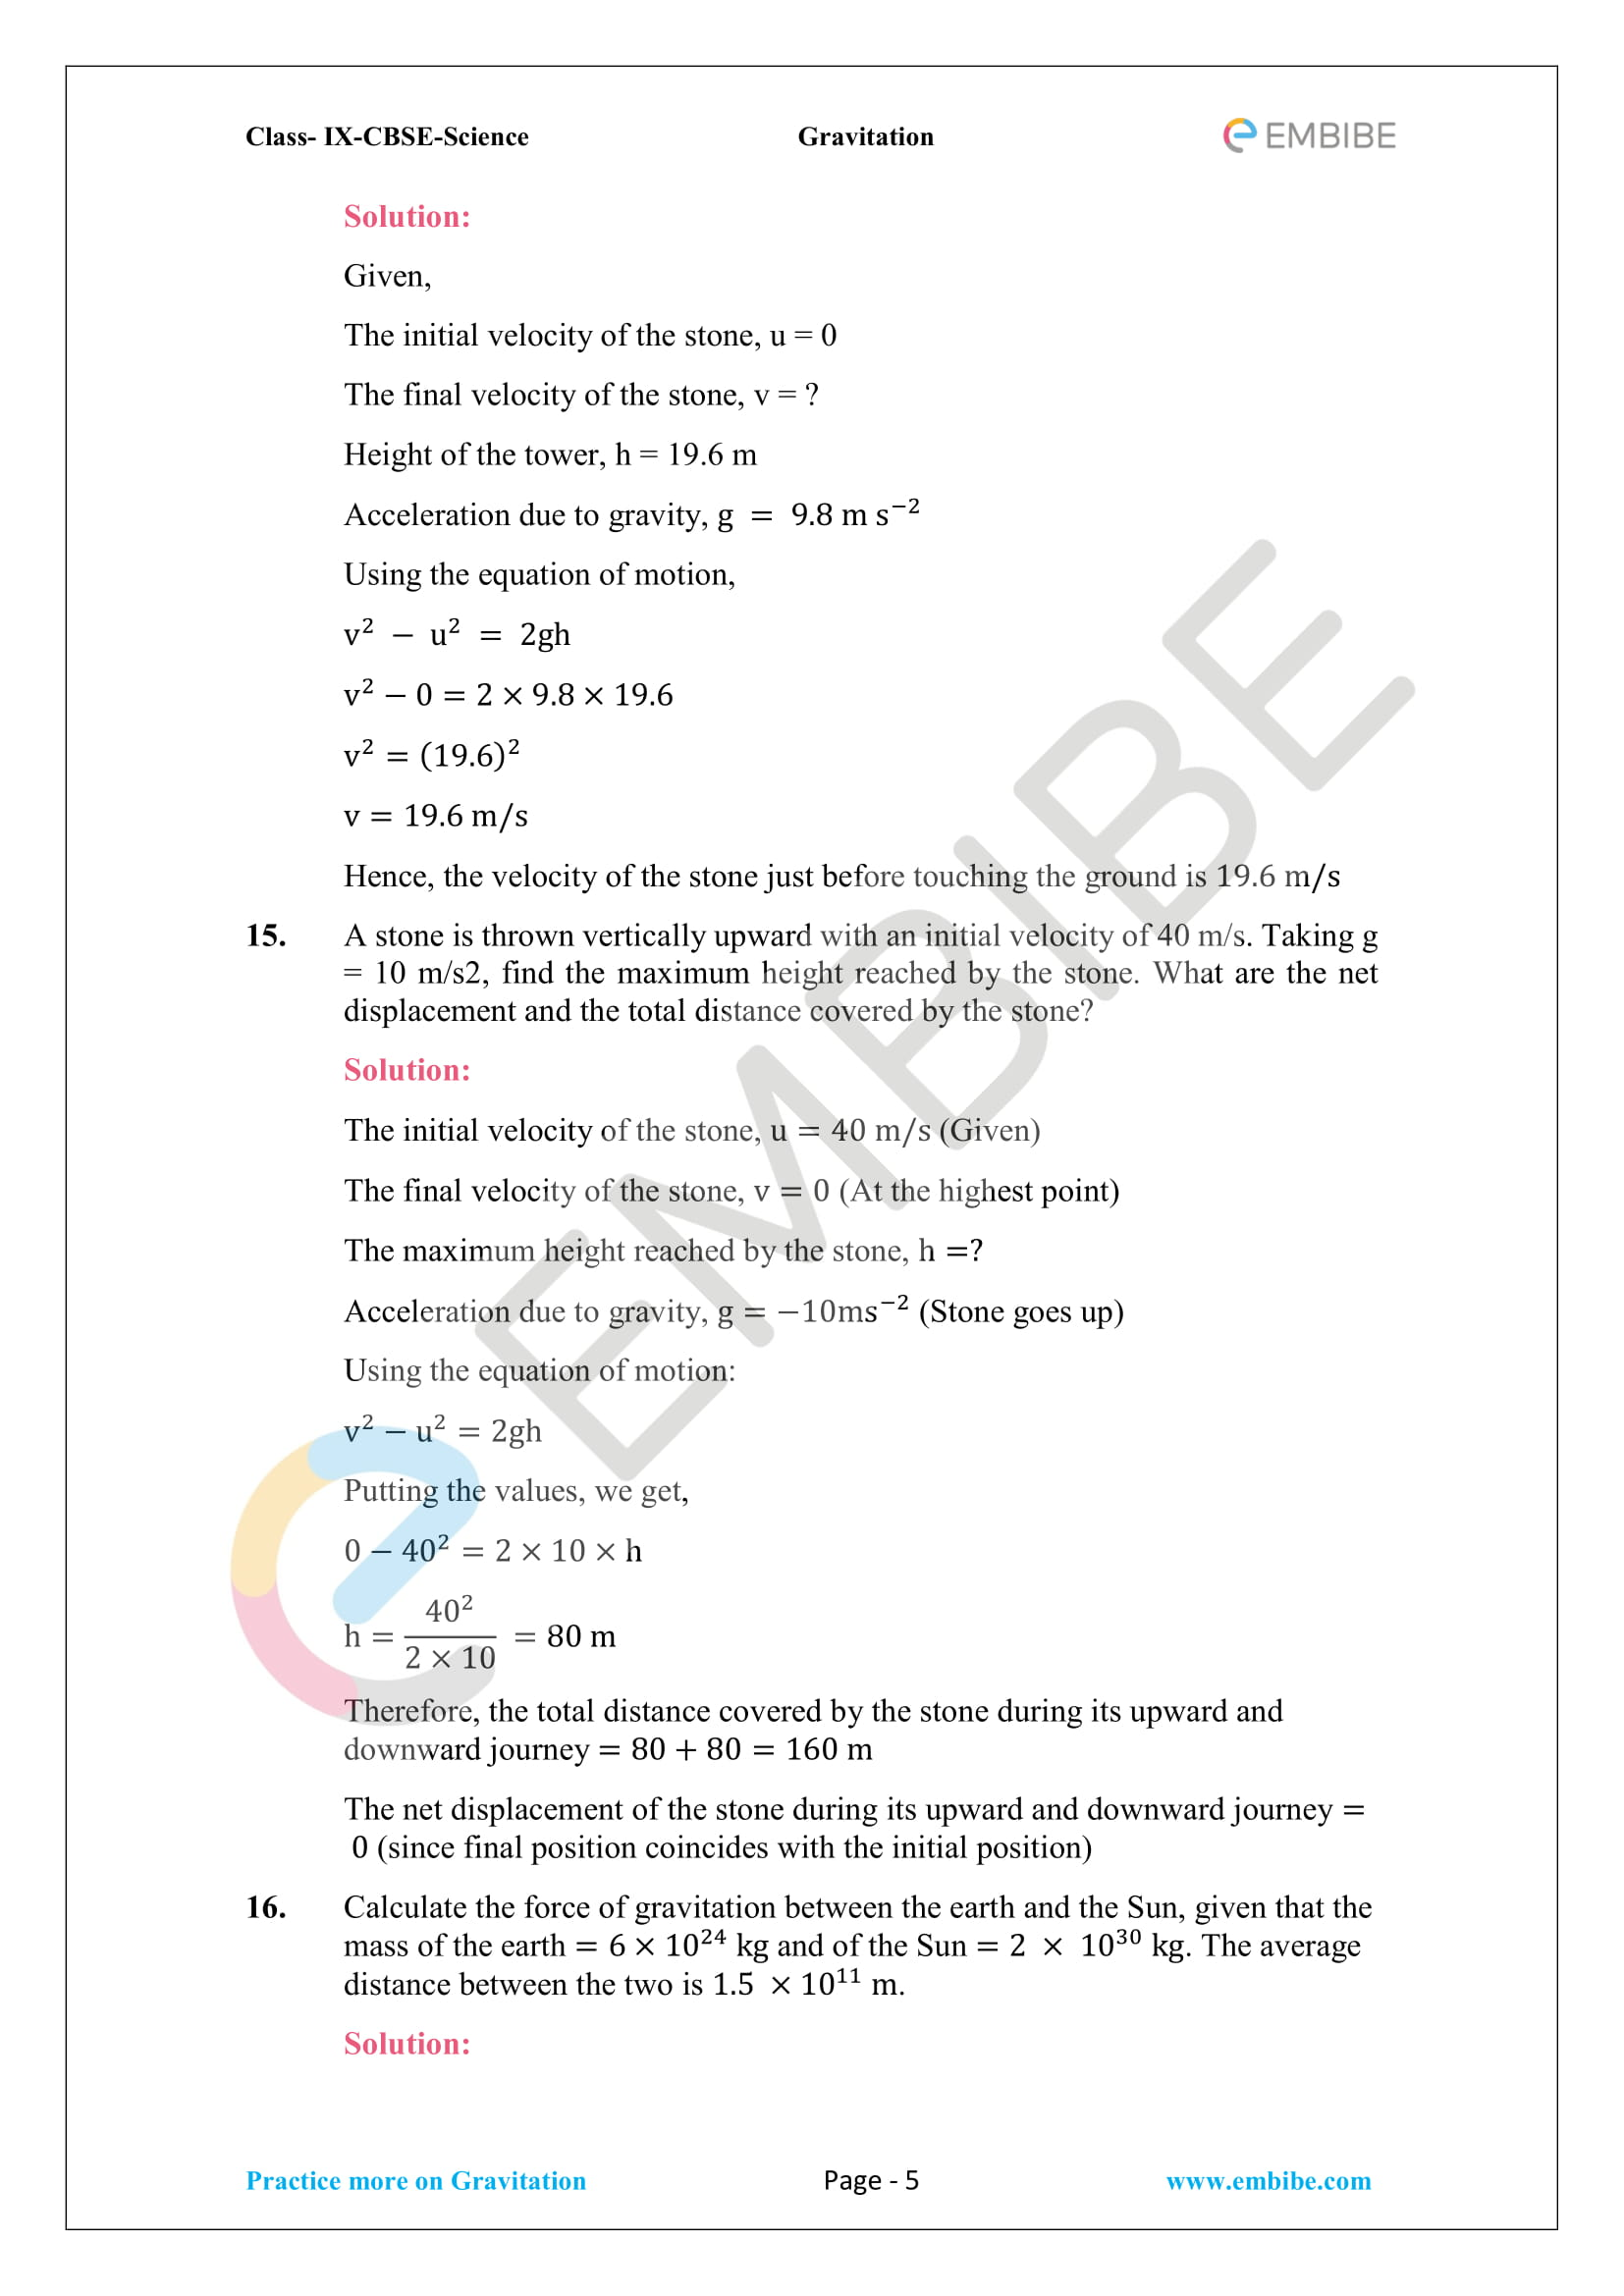 CBSE NCERT Solutions For Class 9 Science Chapter 10 – Gravitation - 5